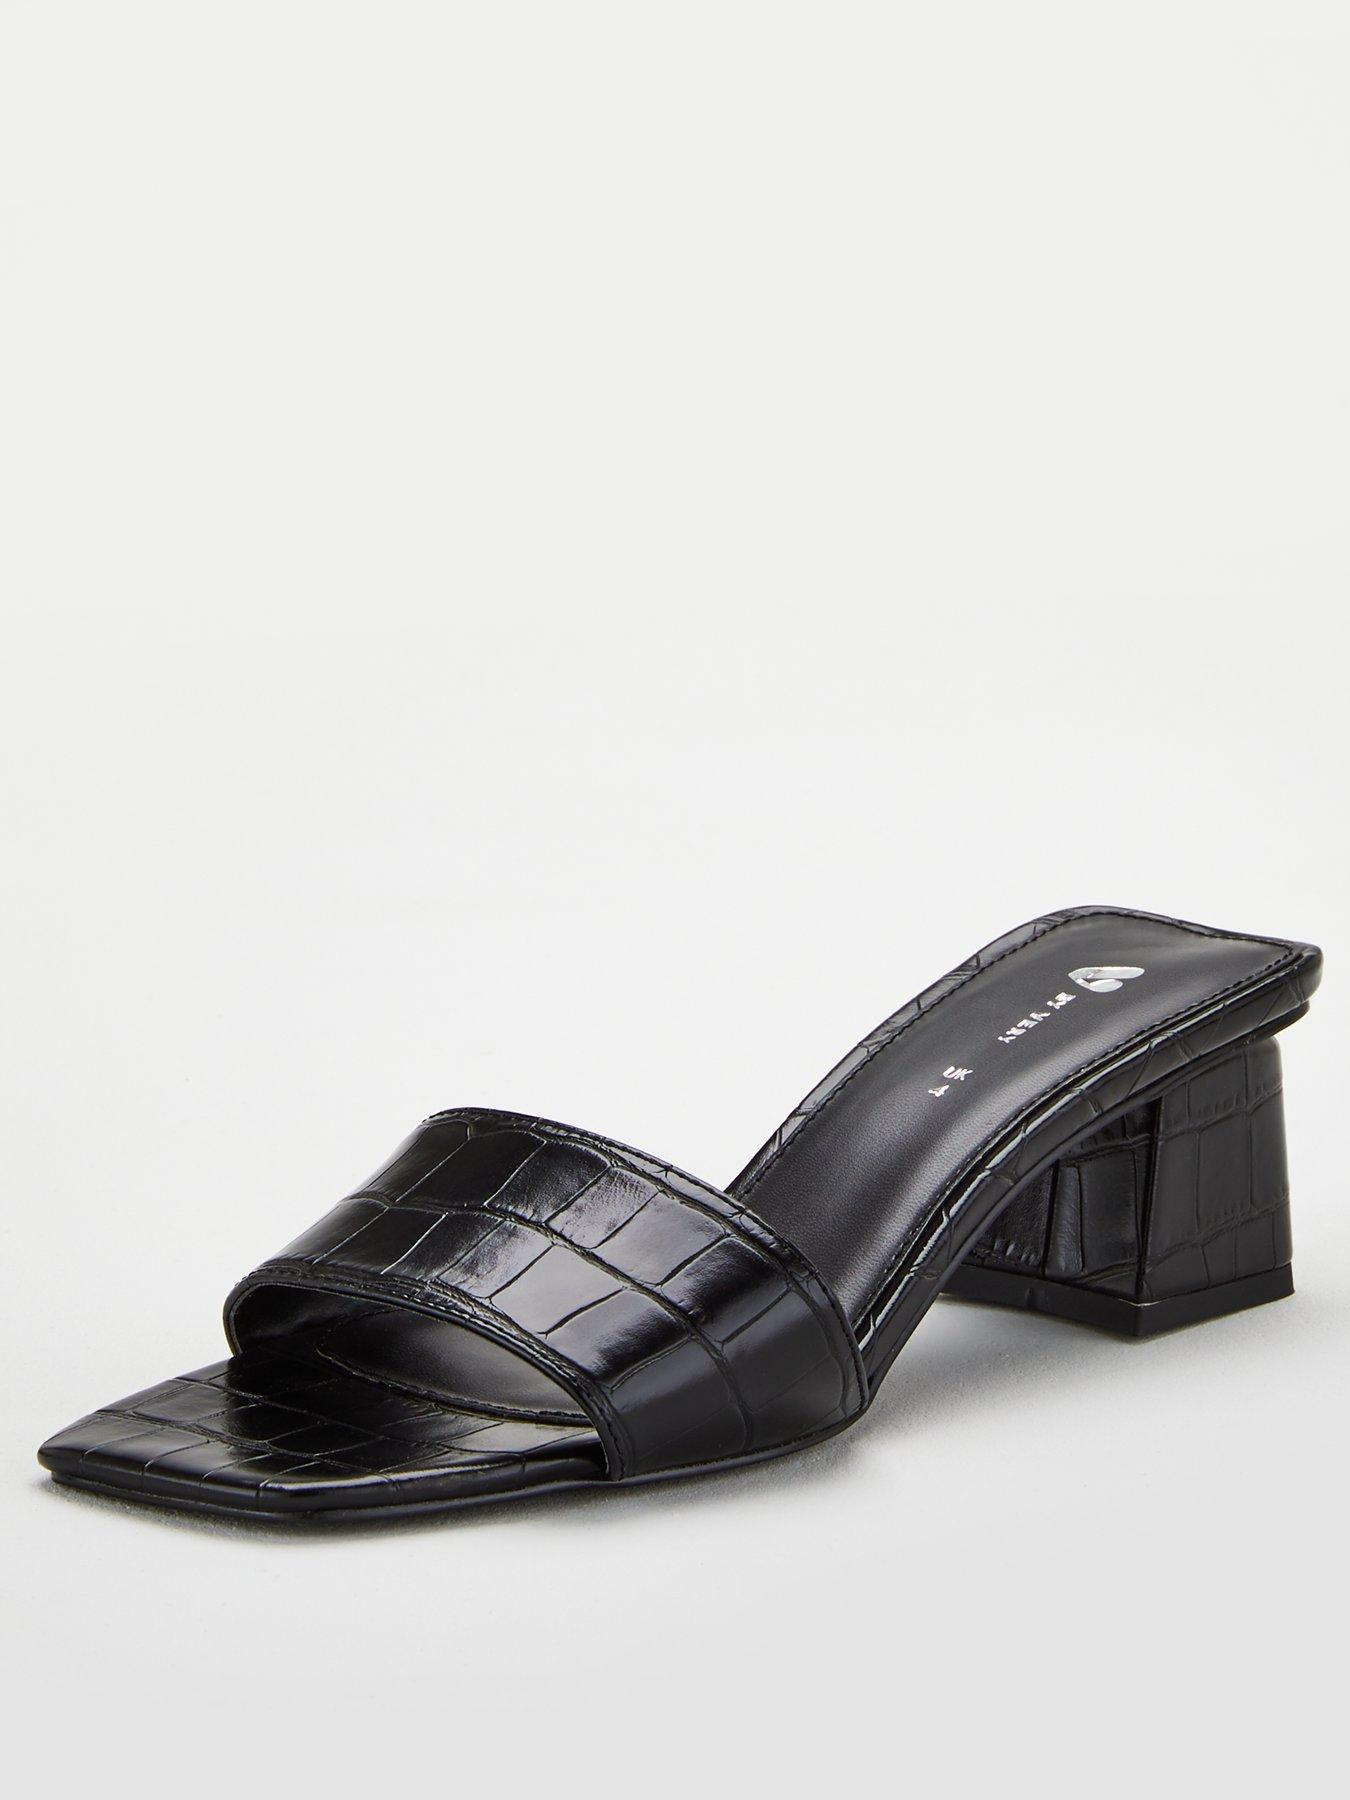 V by Very Braxton Square Toe Low Block